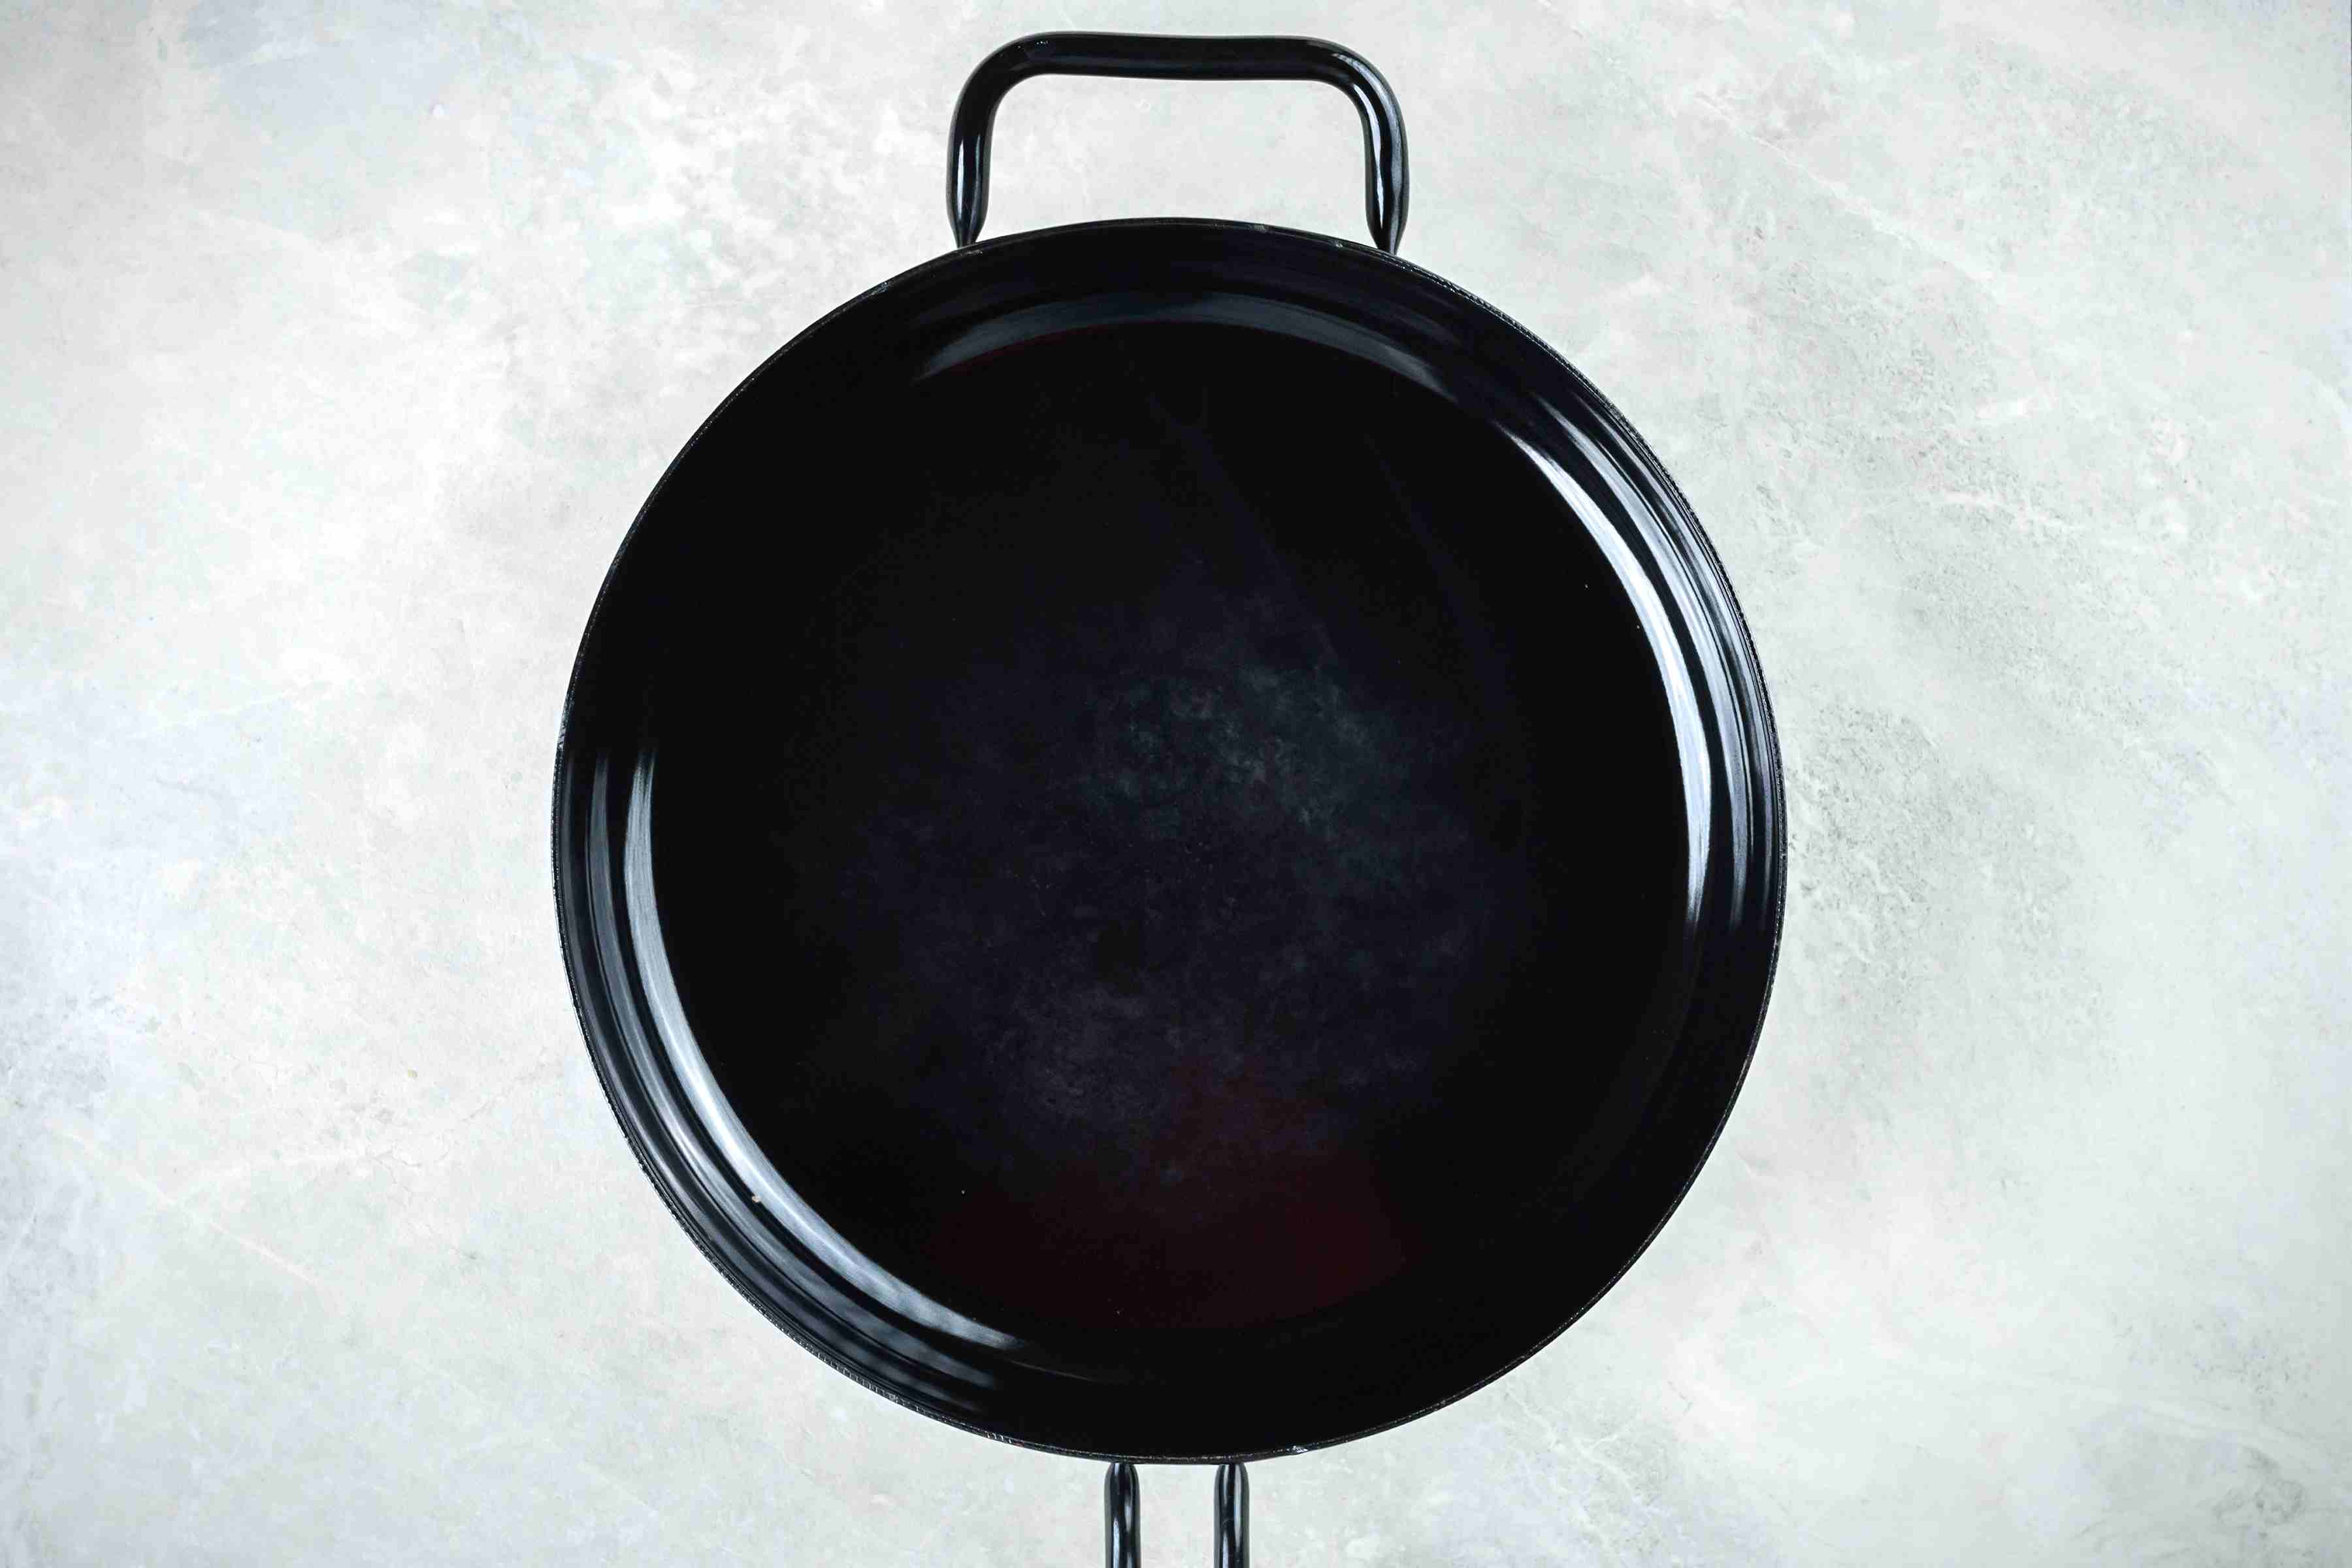 Cast-iron skillet with oil